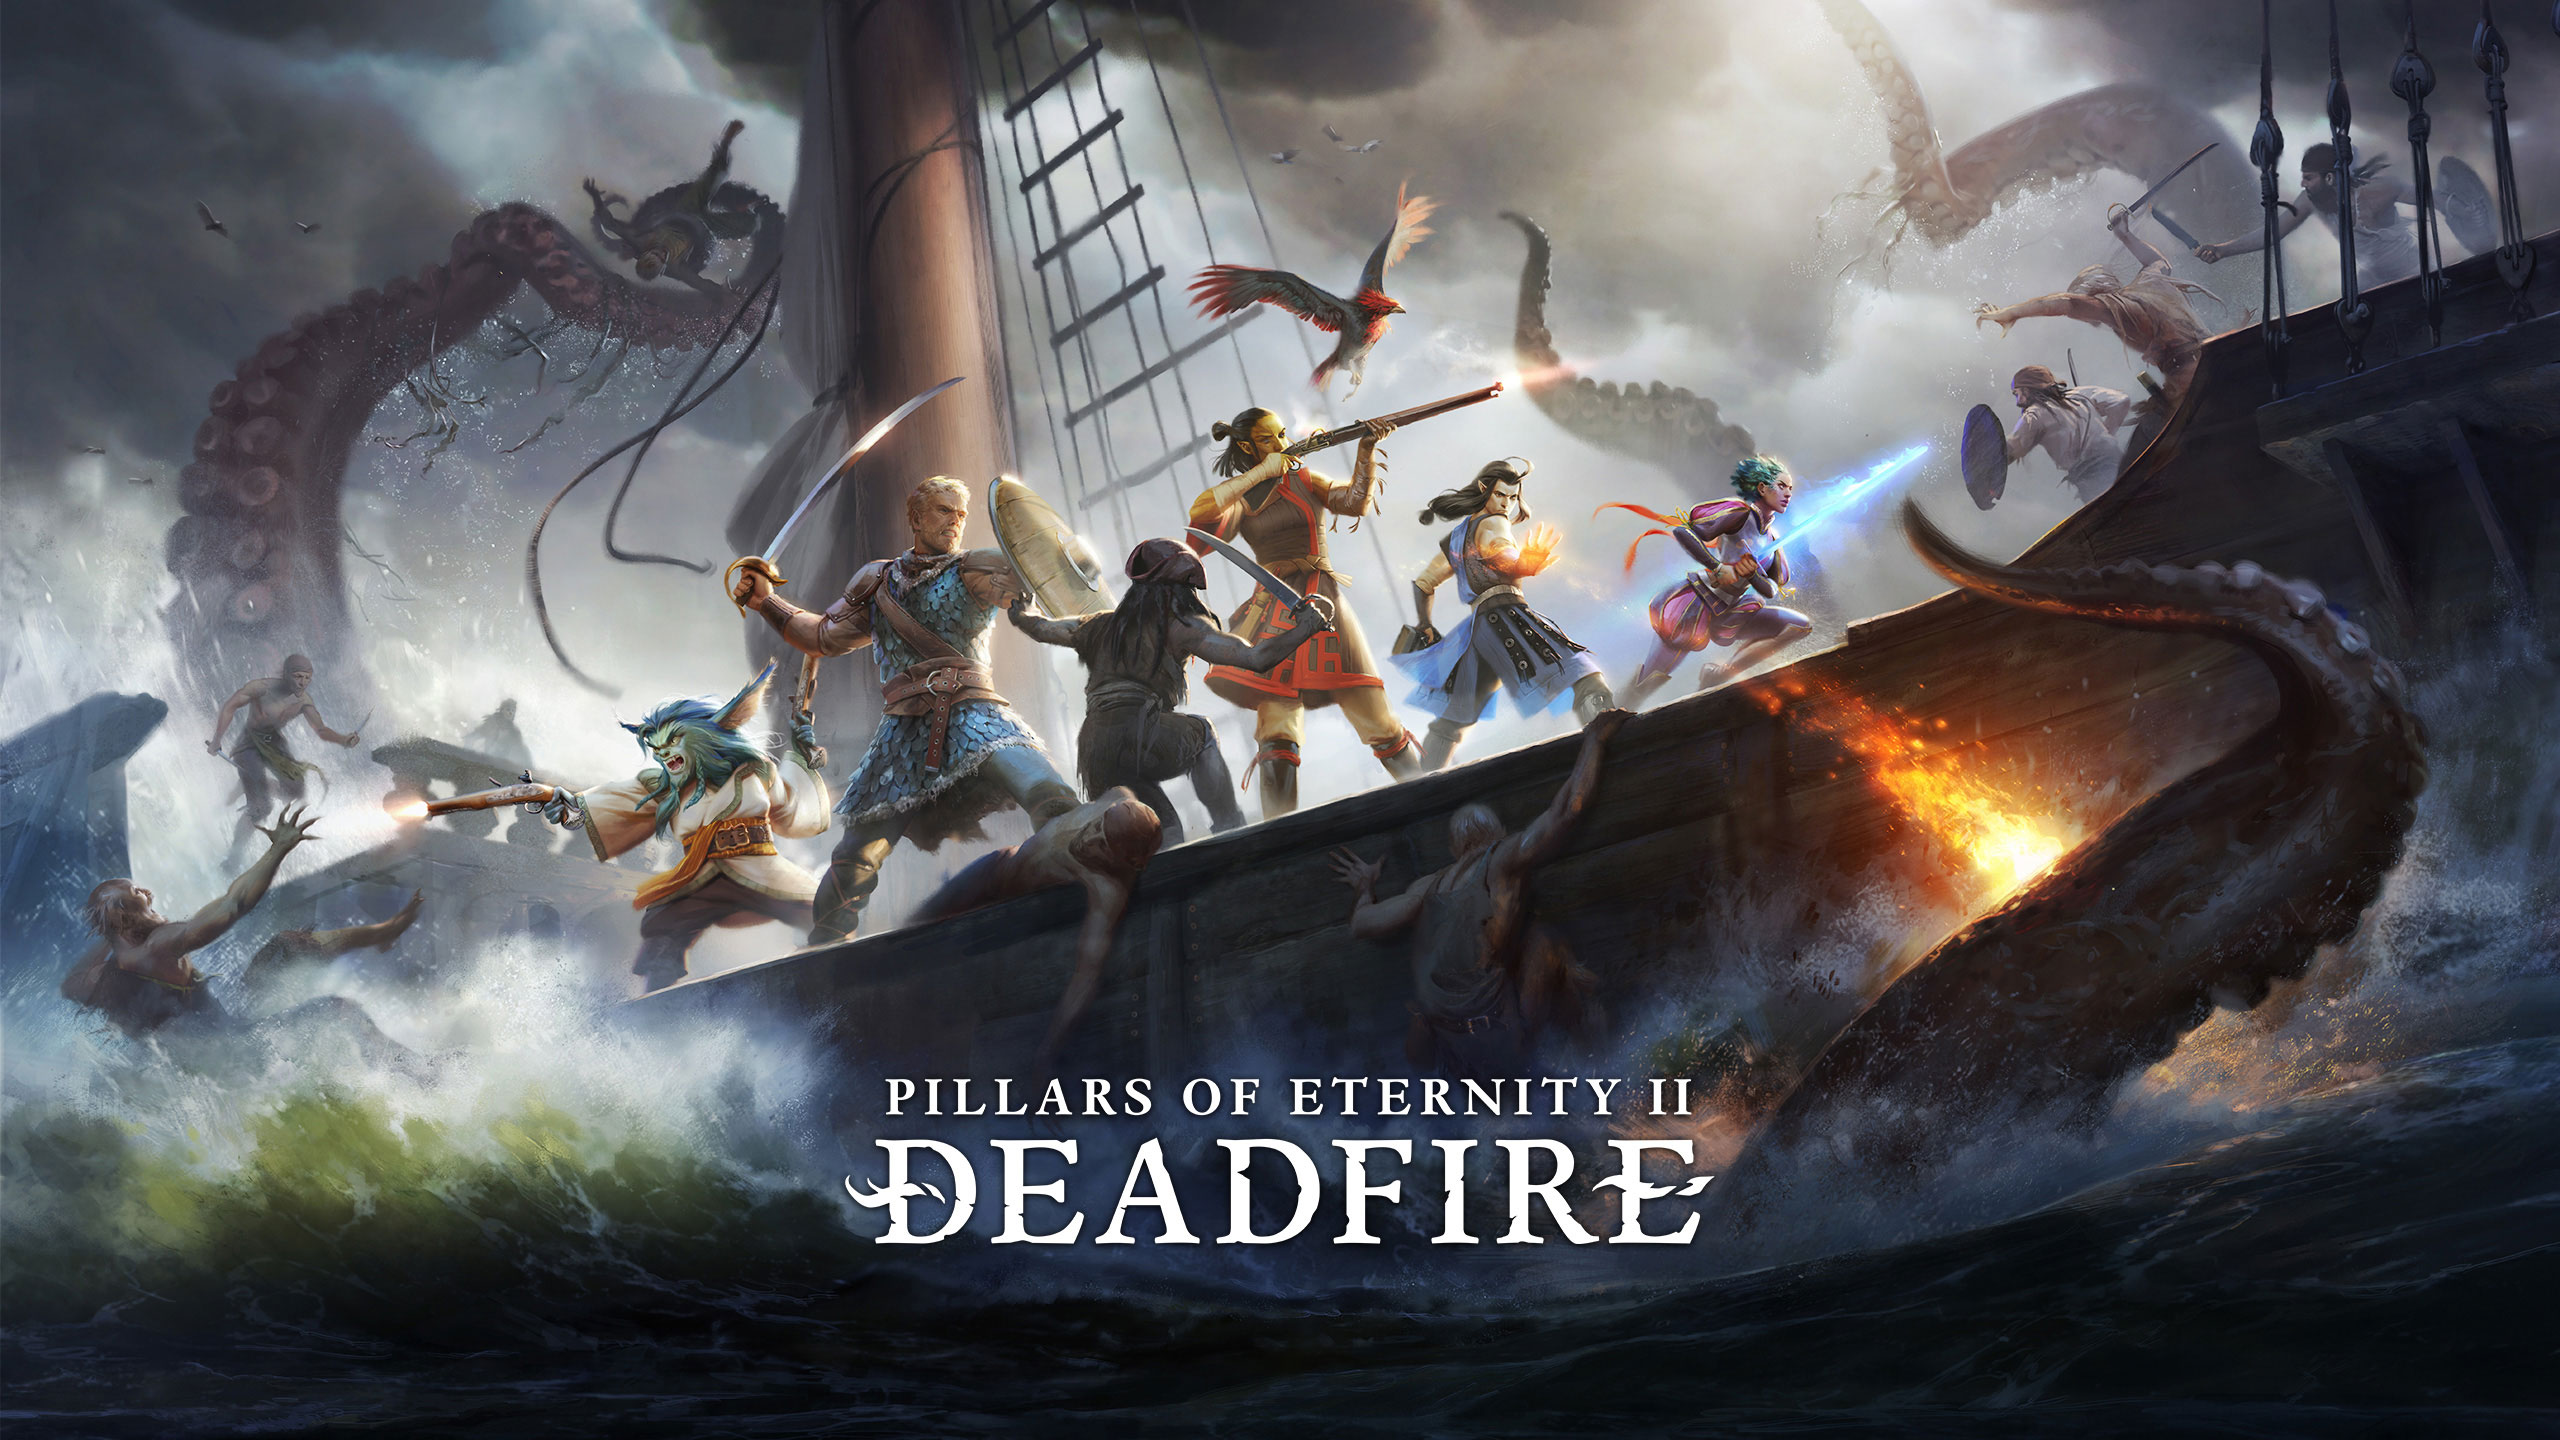 Pillars of Eternity II Deadfire Update 40 Multiclassing Part II on Fig